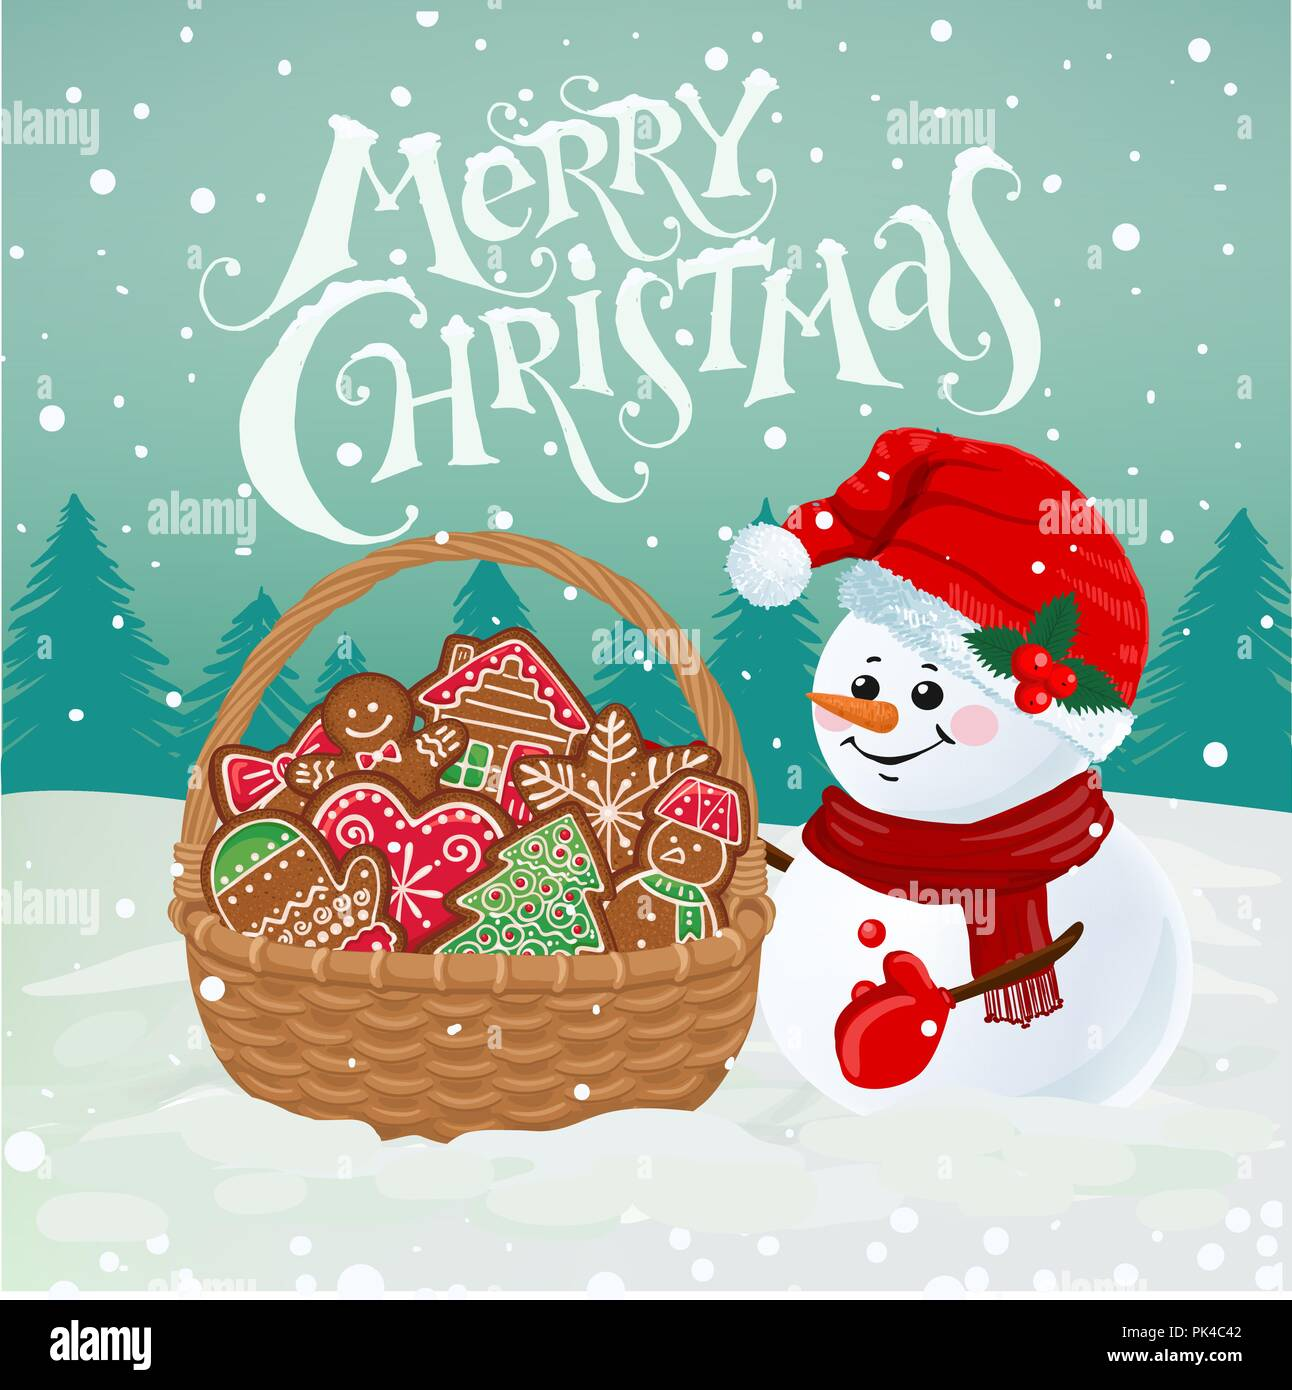 Merry Christmas Wishes Funny.Funny Snowman With Basket Full Of Gingerbread On Snowy